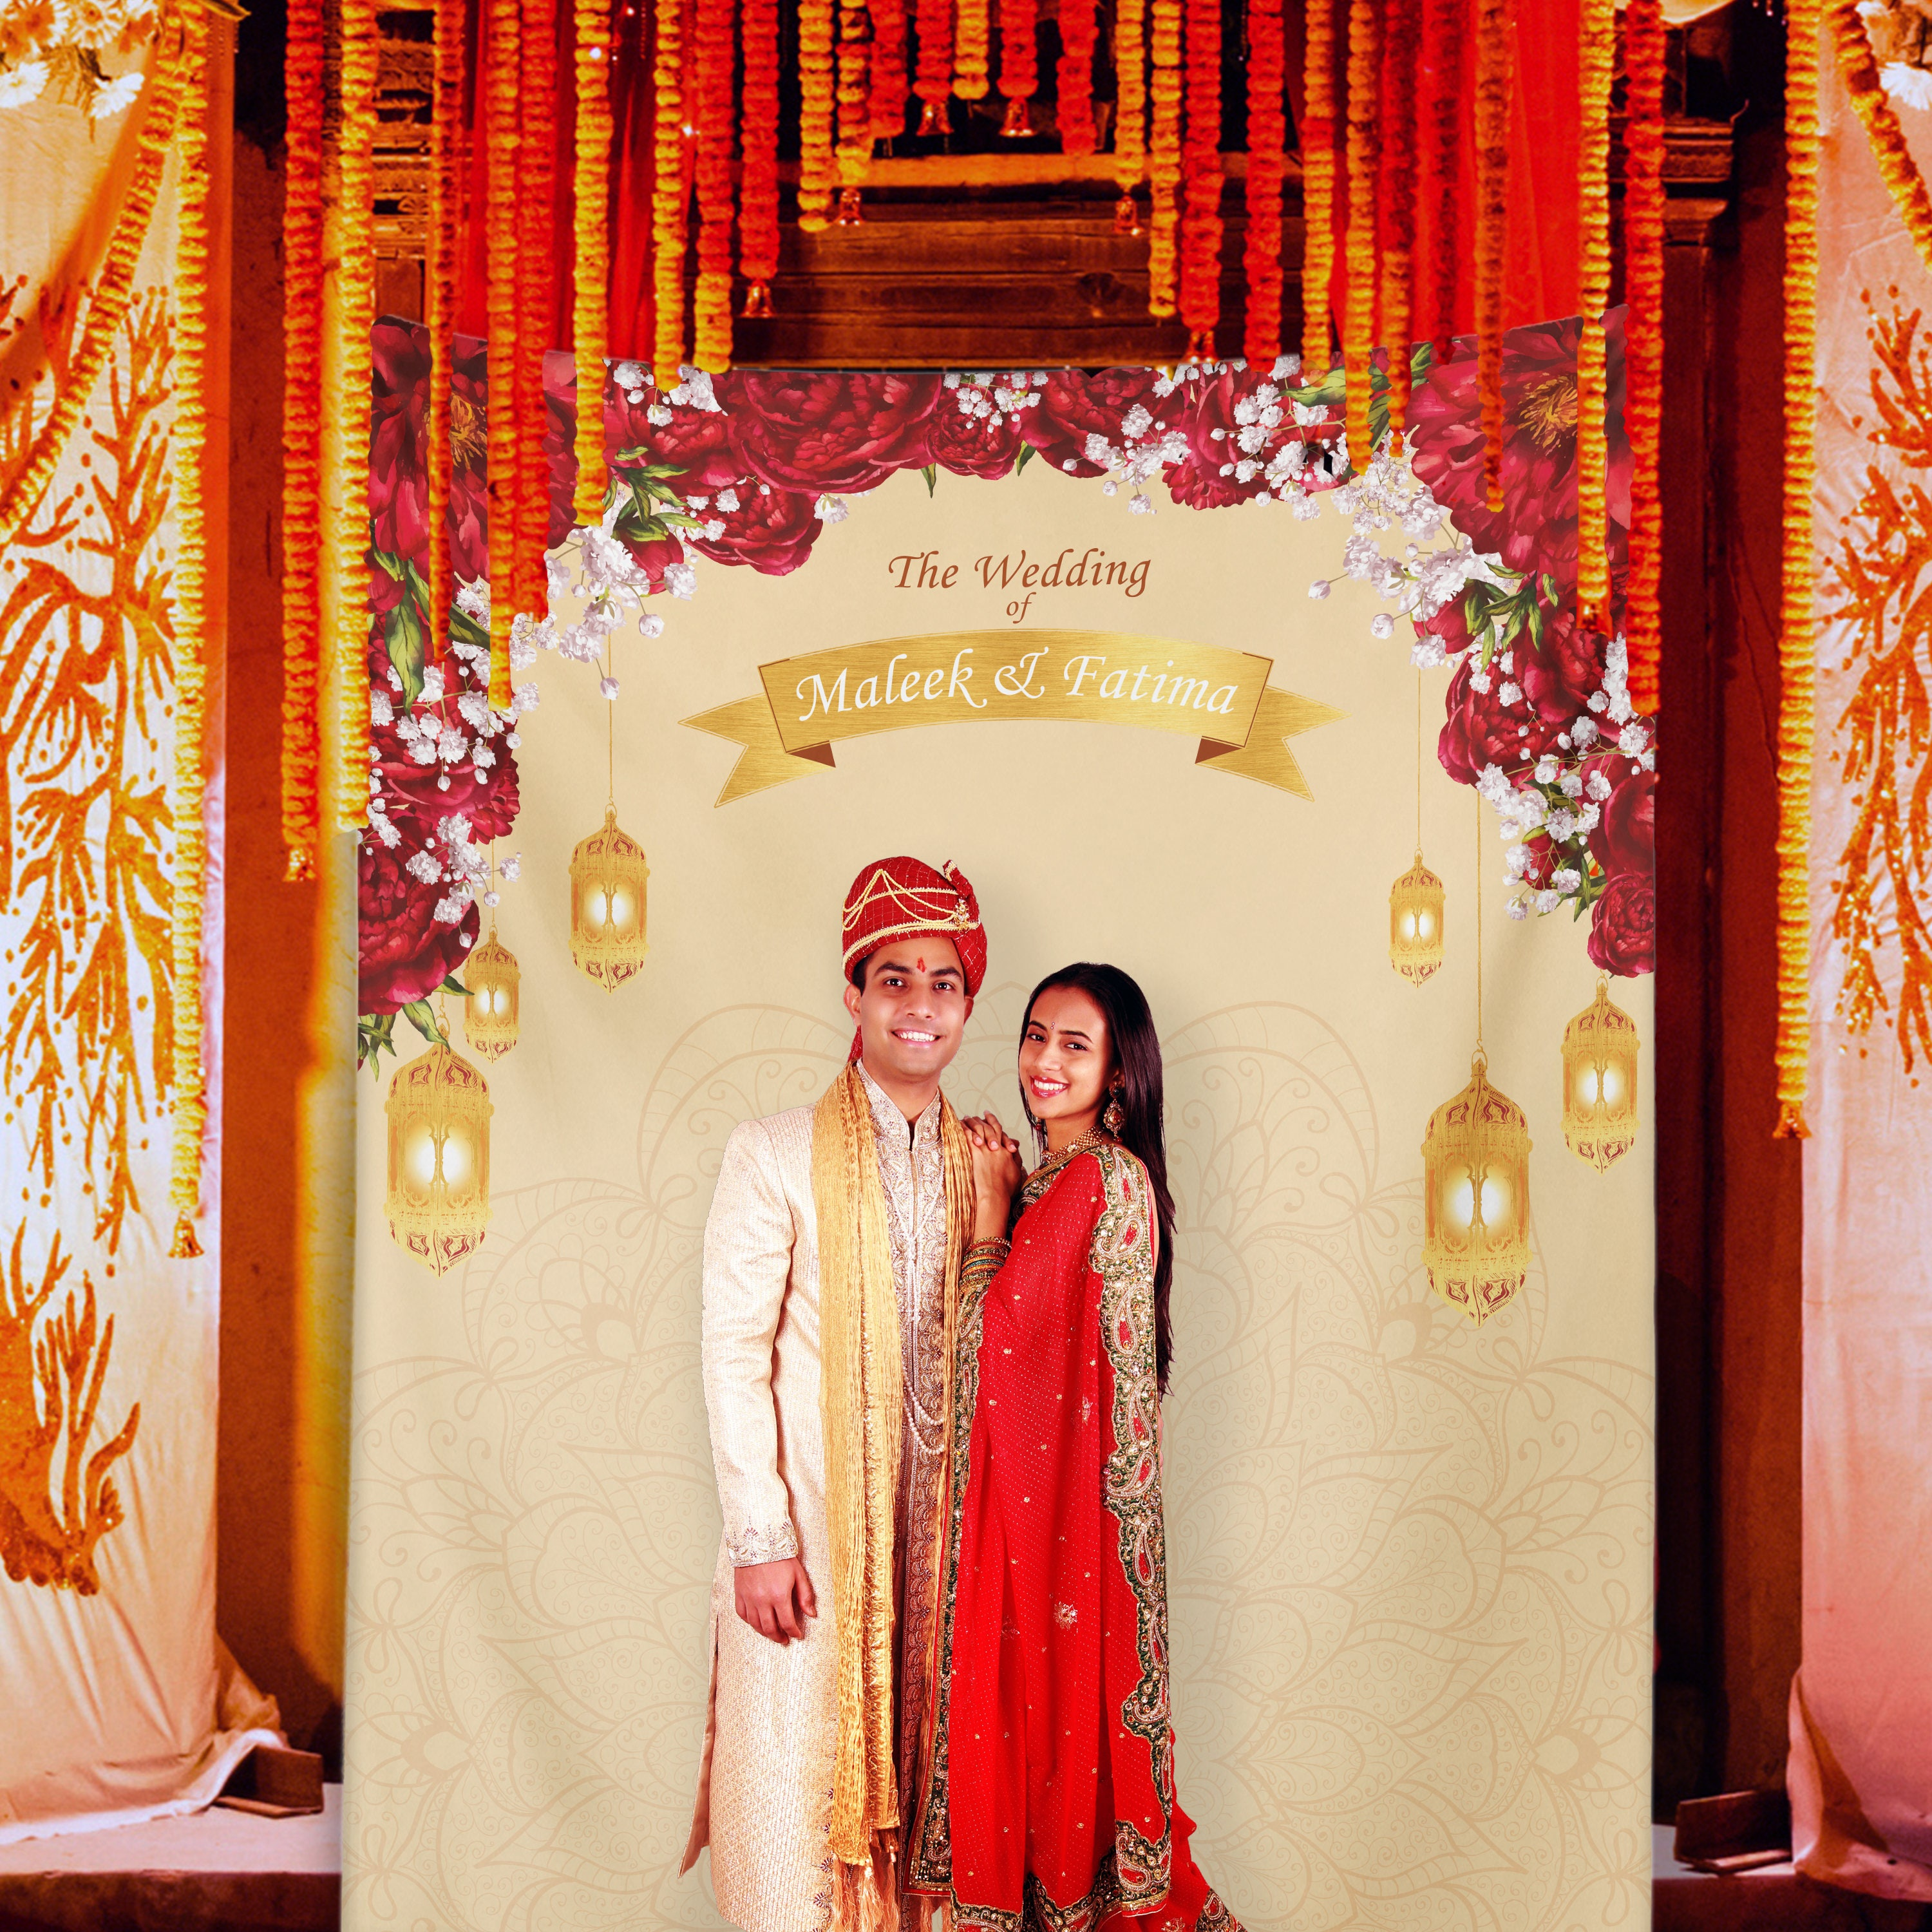 Hindu Wedding: Hindu Wedding Indian Wedding Decor Indian Wedding Banner